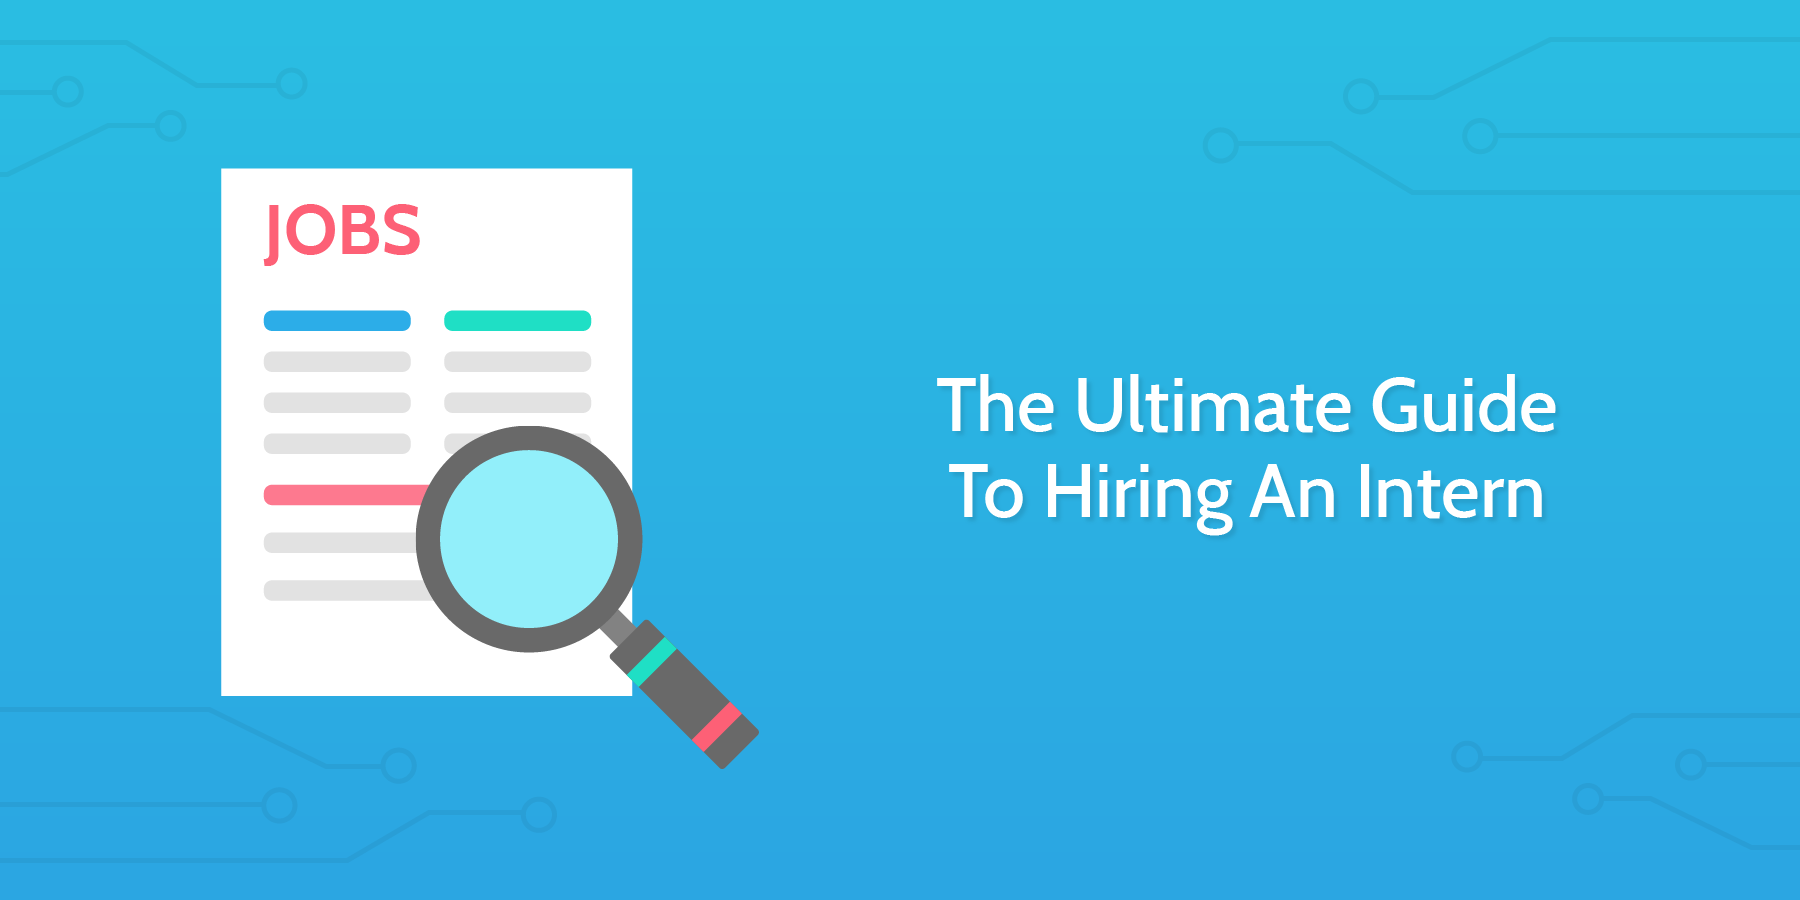 The Ultimate Guide To Hiring Interns - header